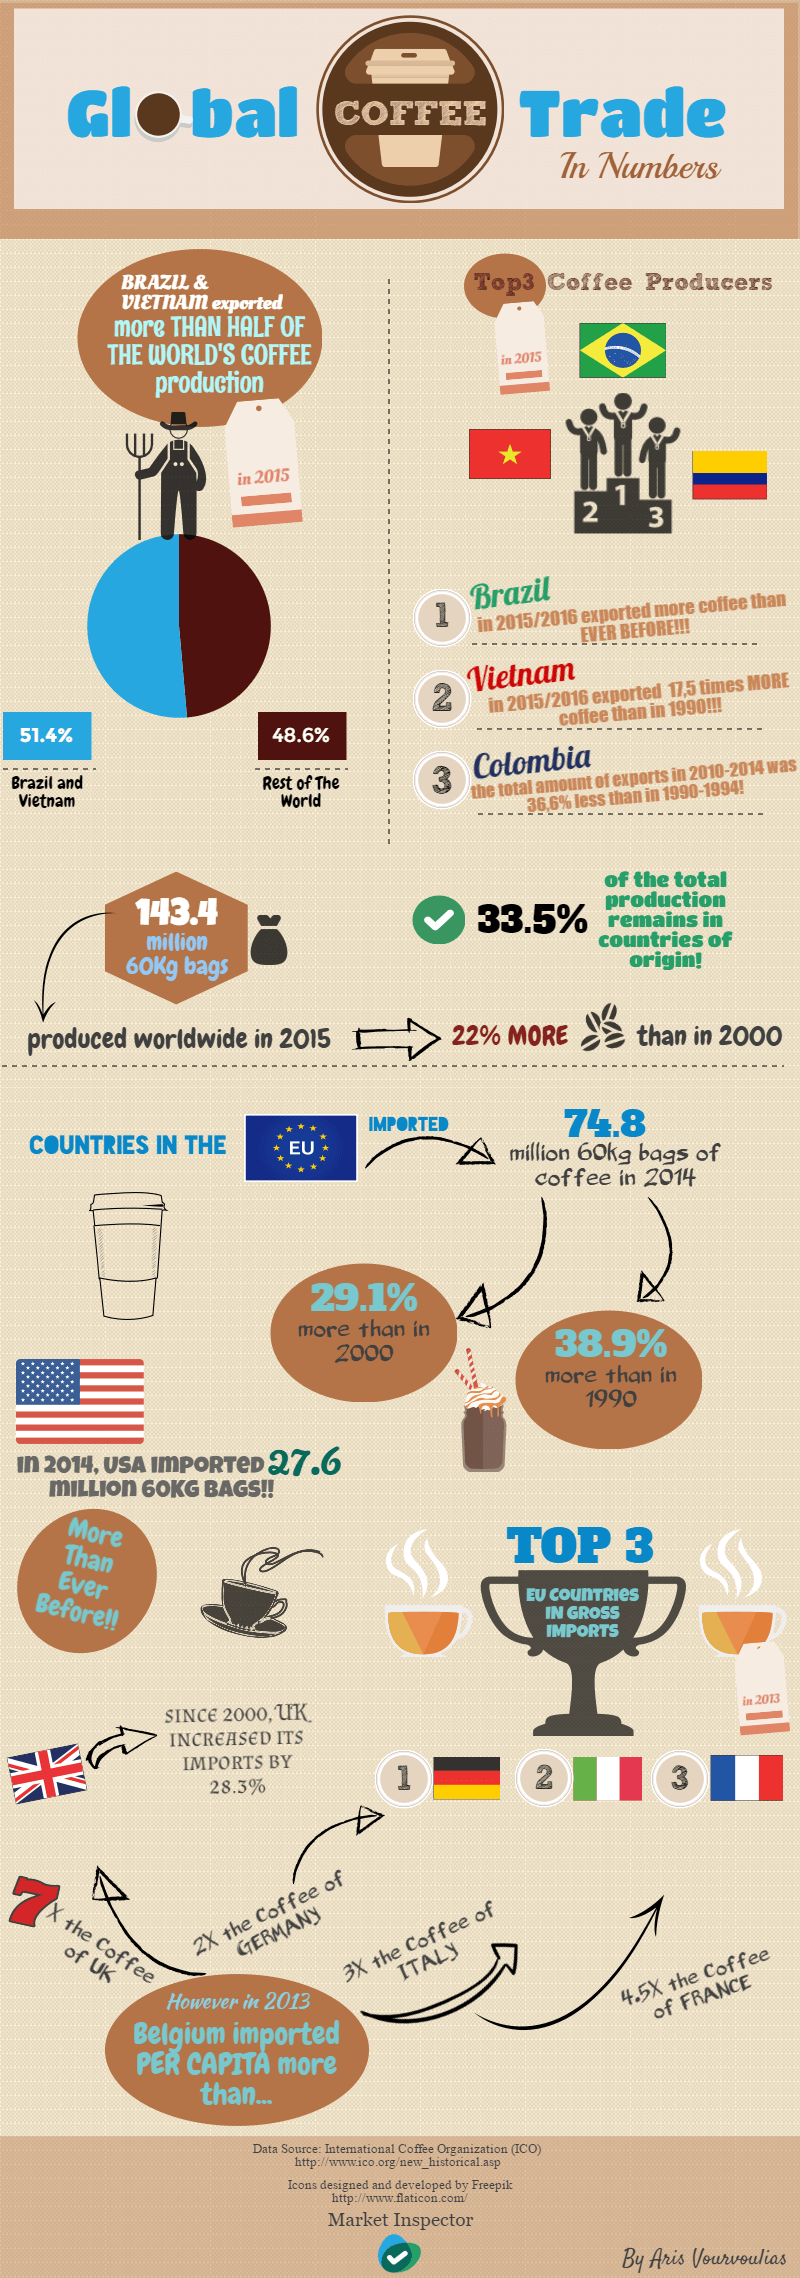 Infographic Global Coffee Trade